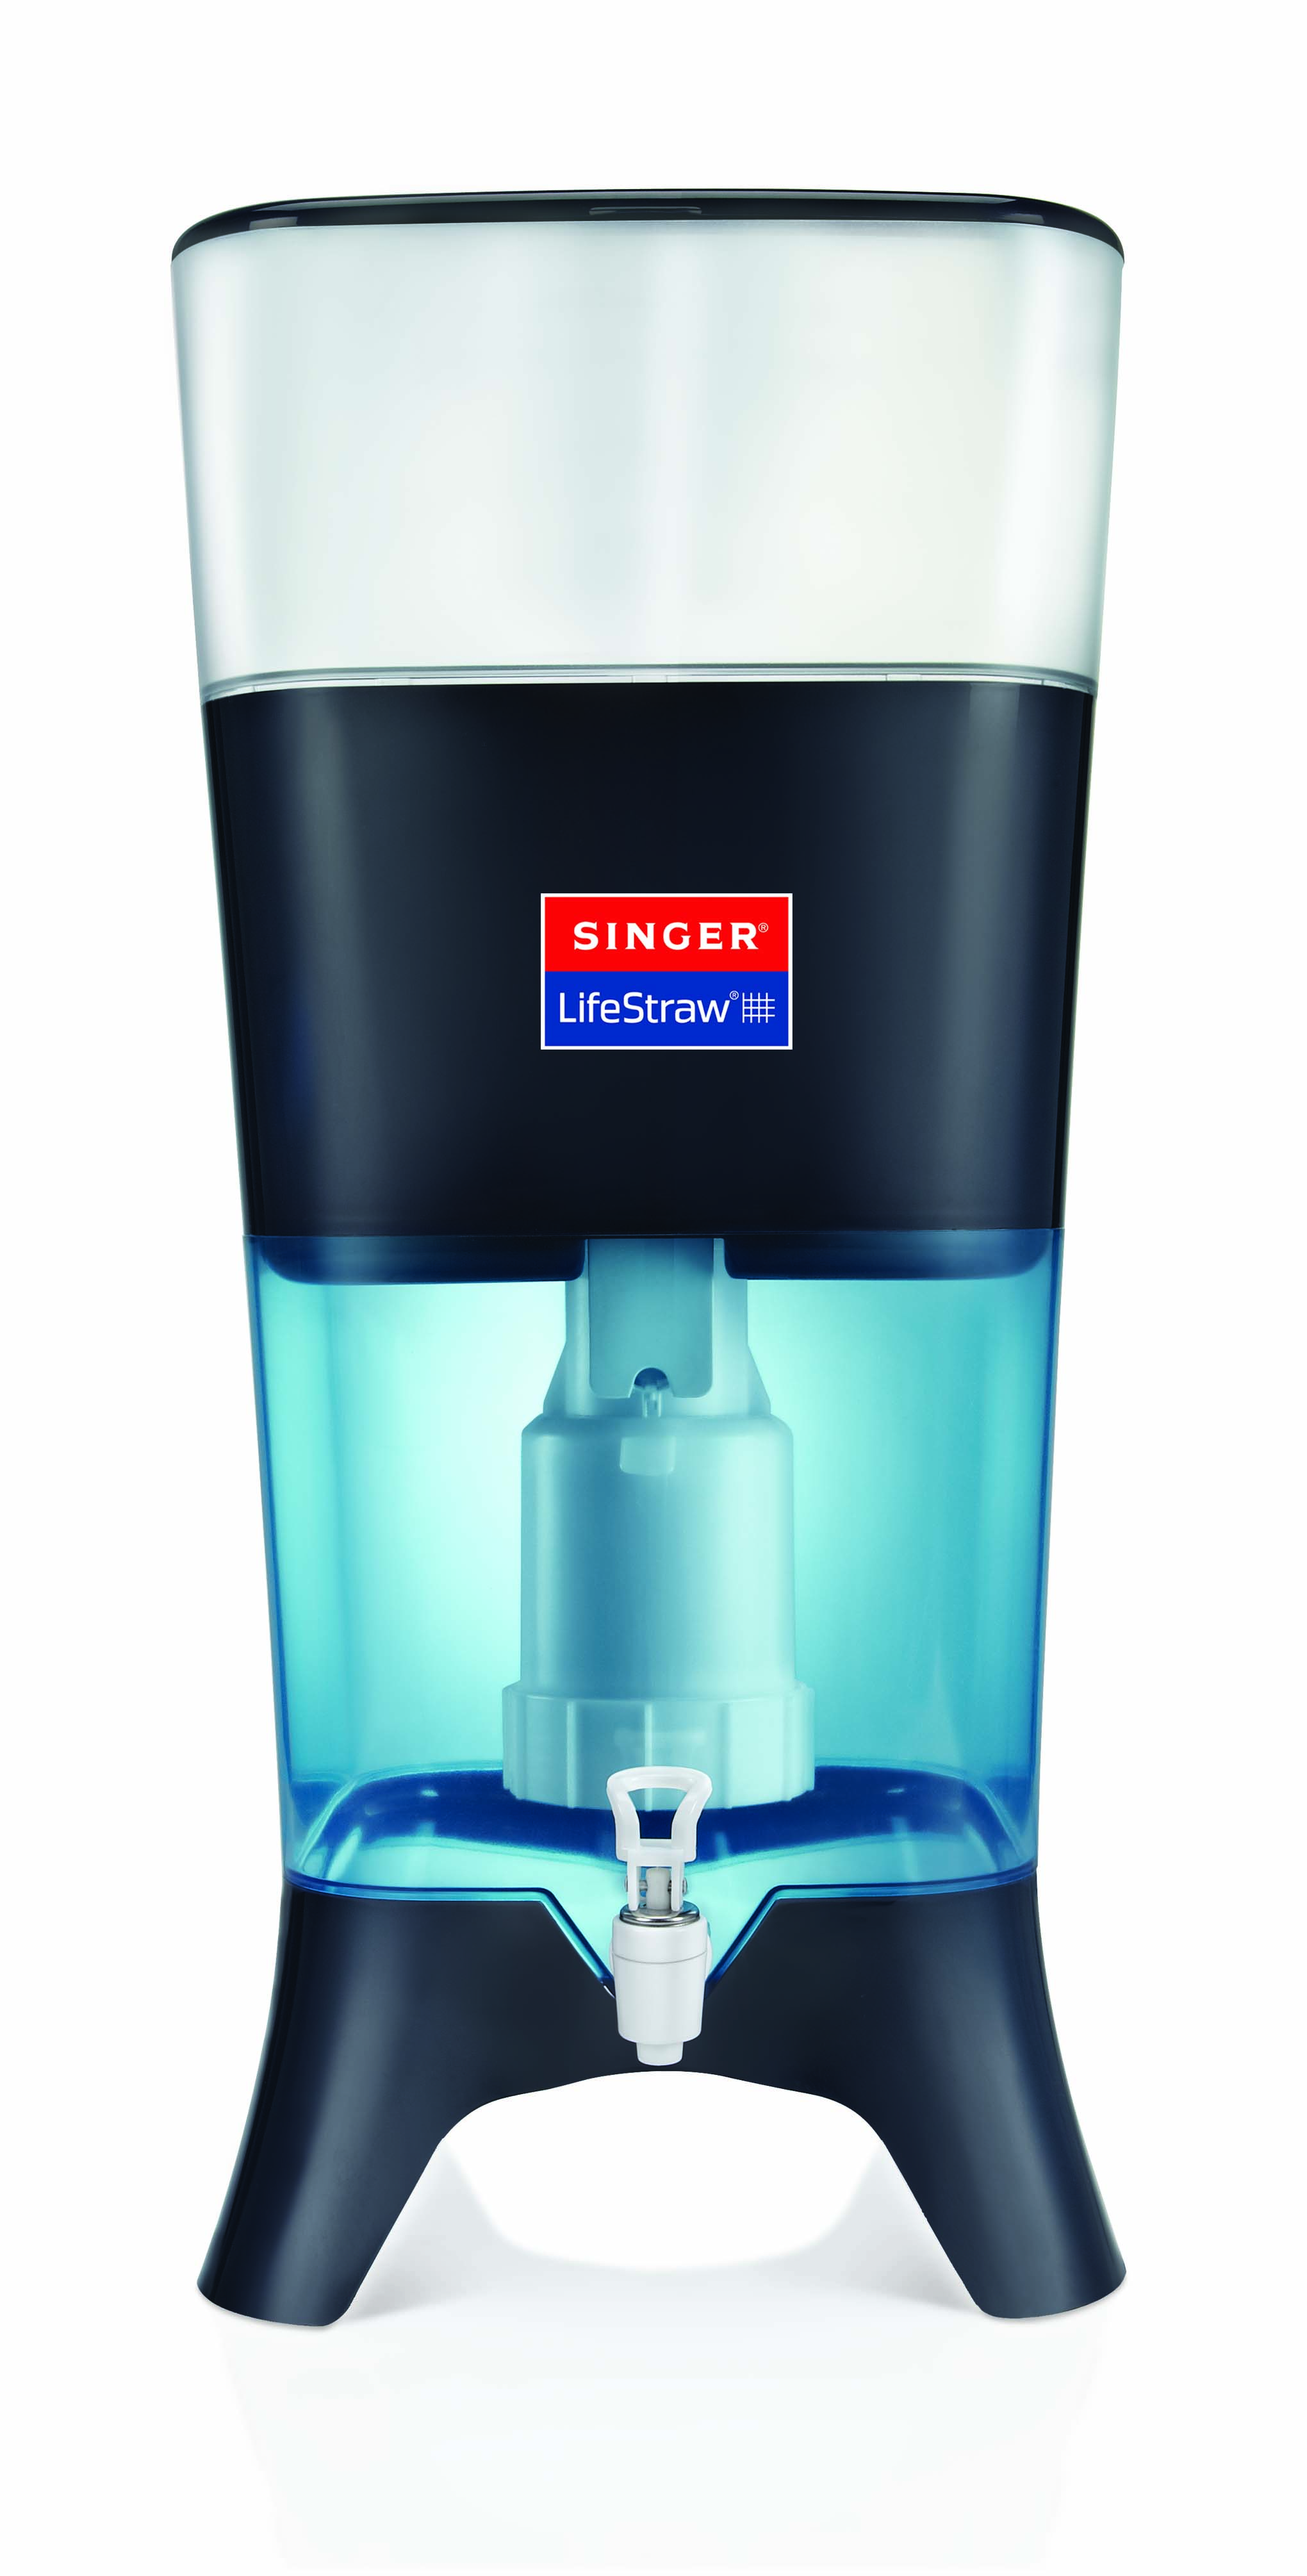 Water Purifier For Home Health Products Singer Malaysia